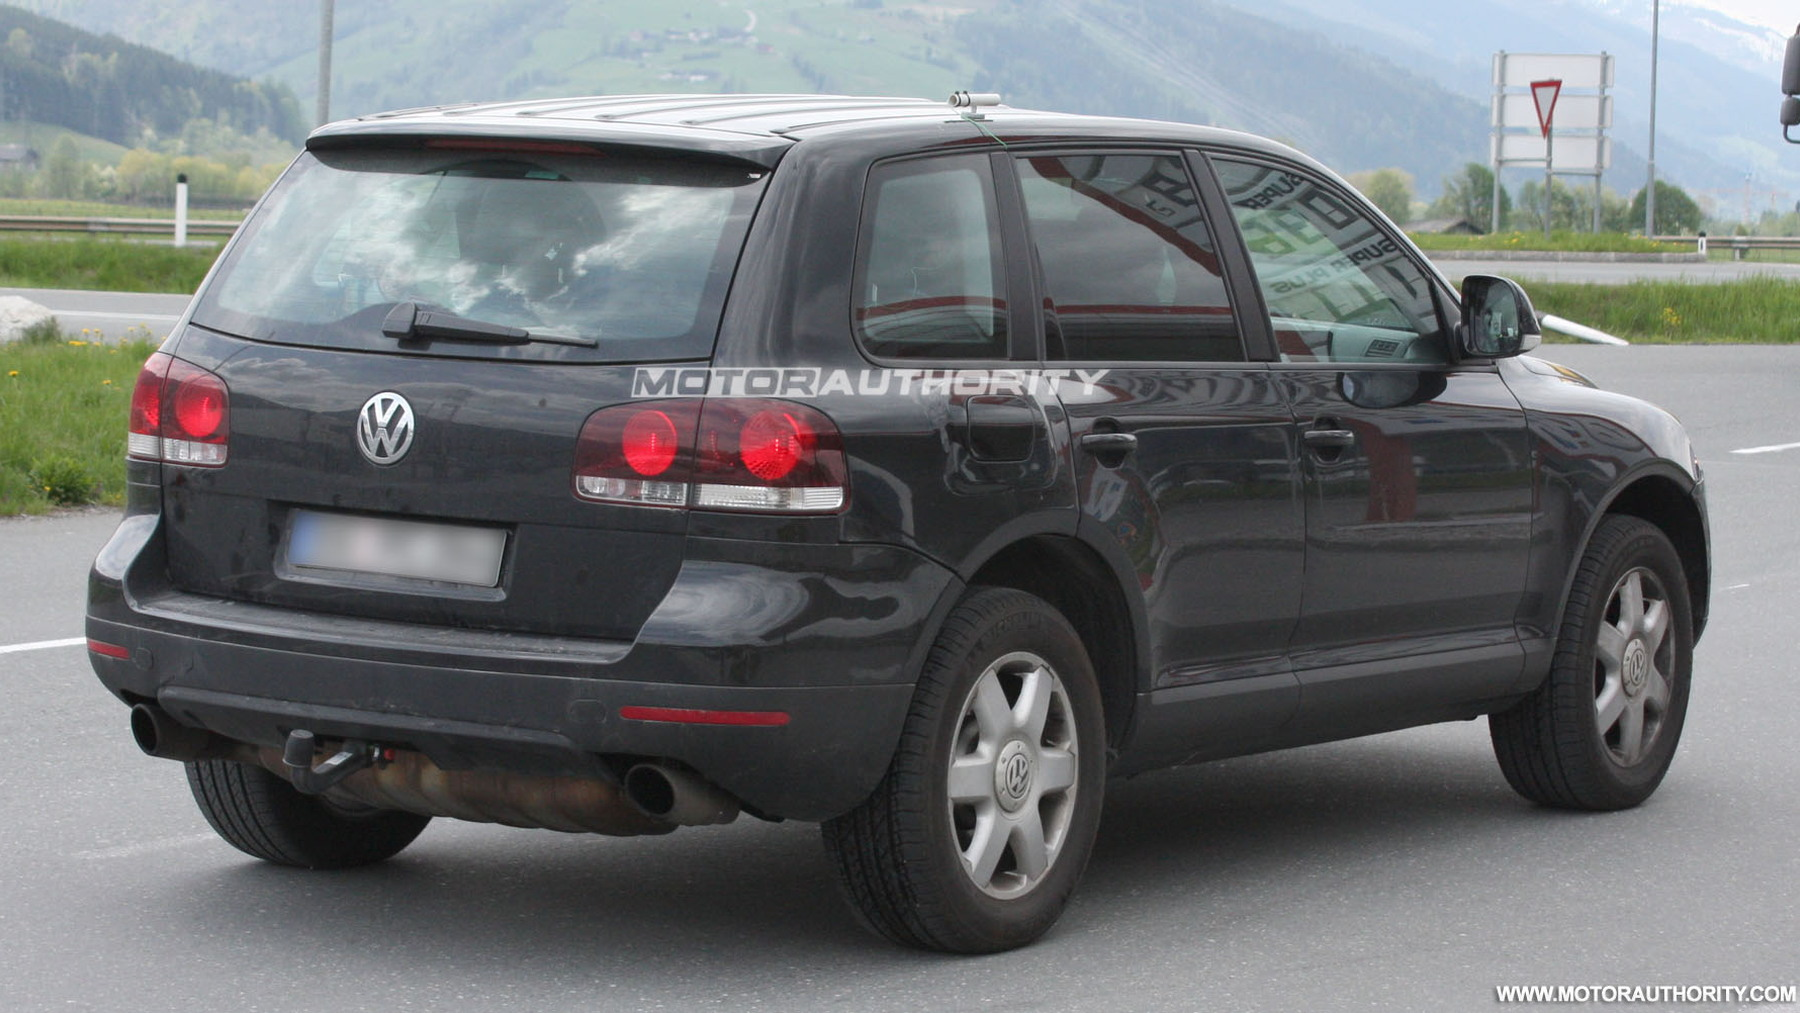 2011 volkswagen touareg test mule spy shots may 005